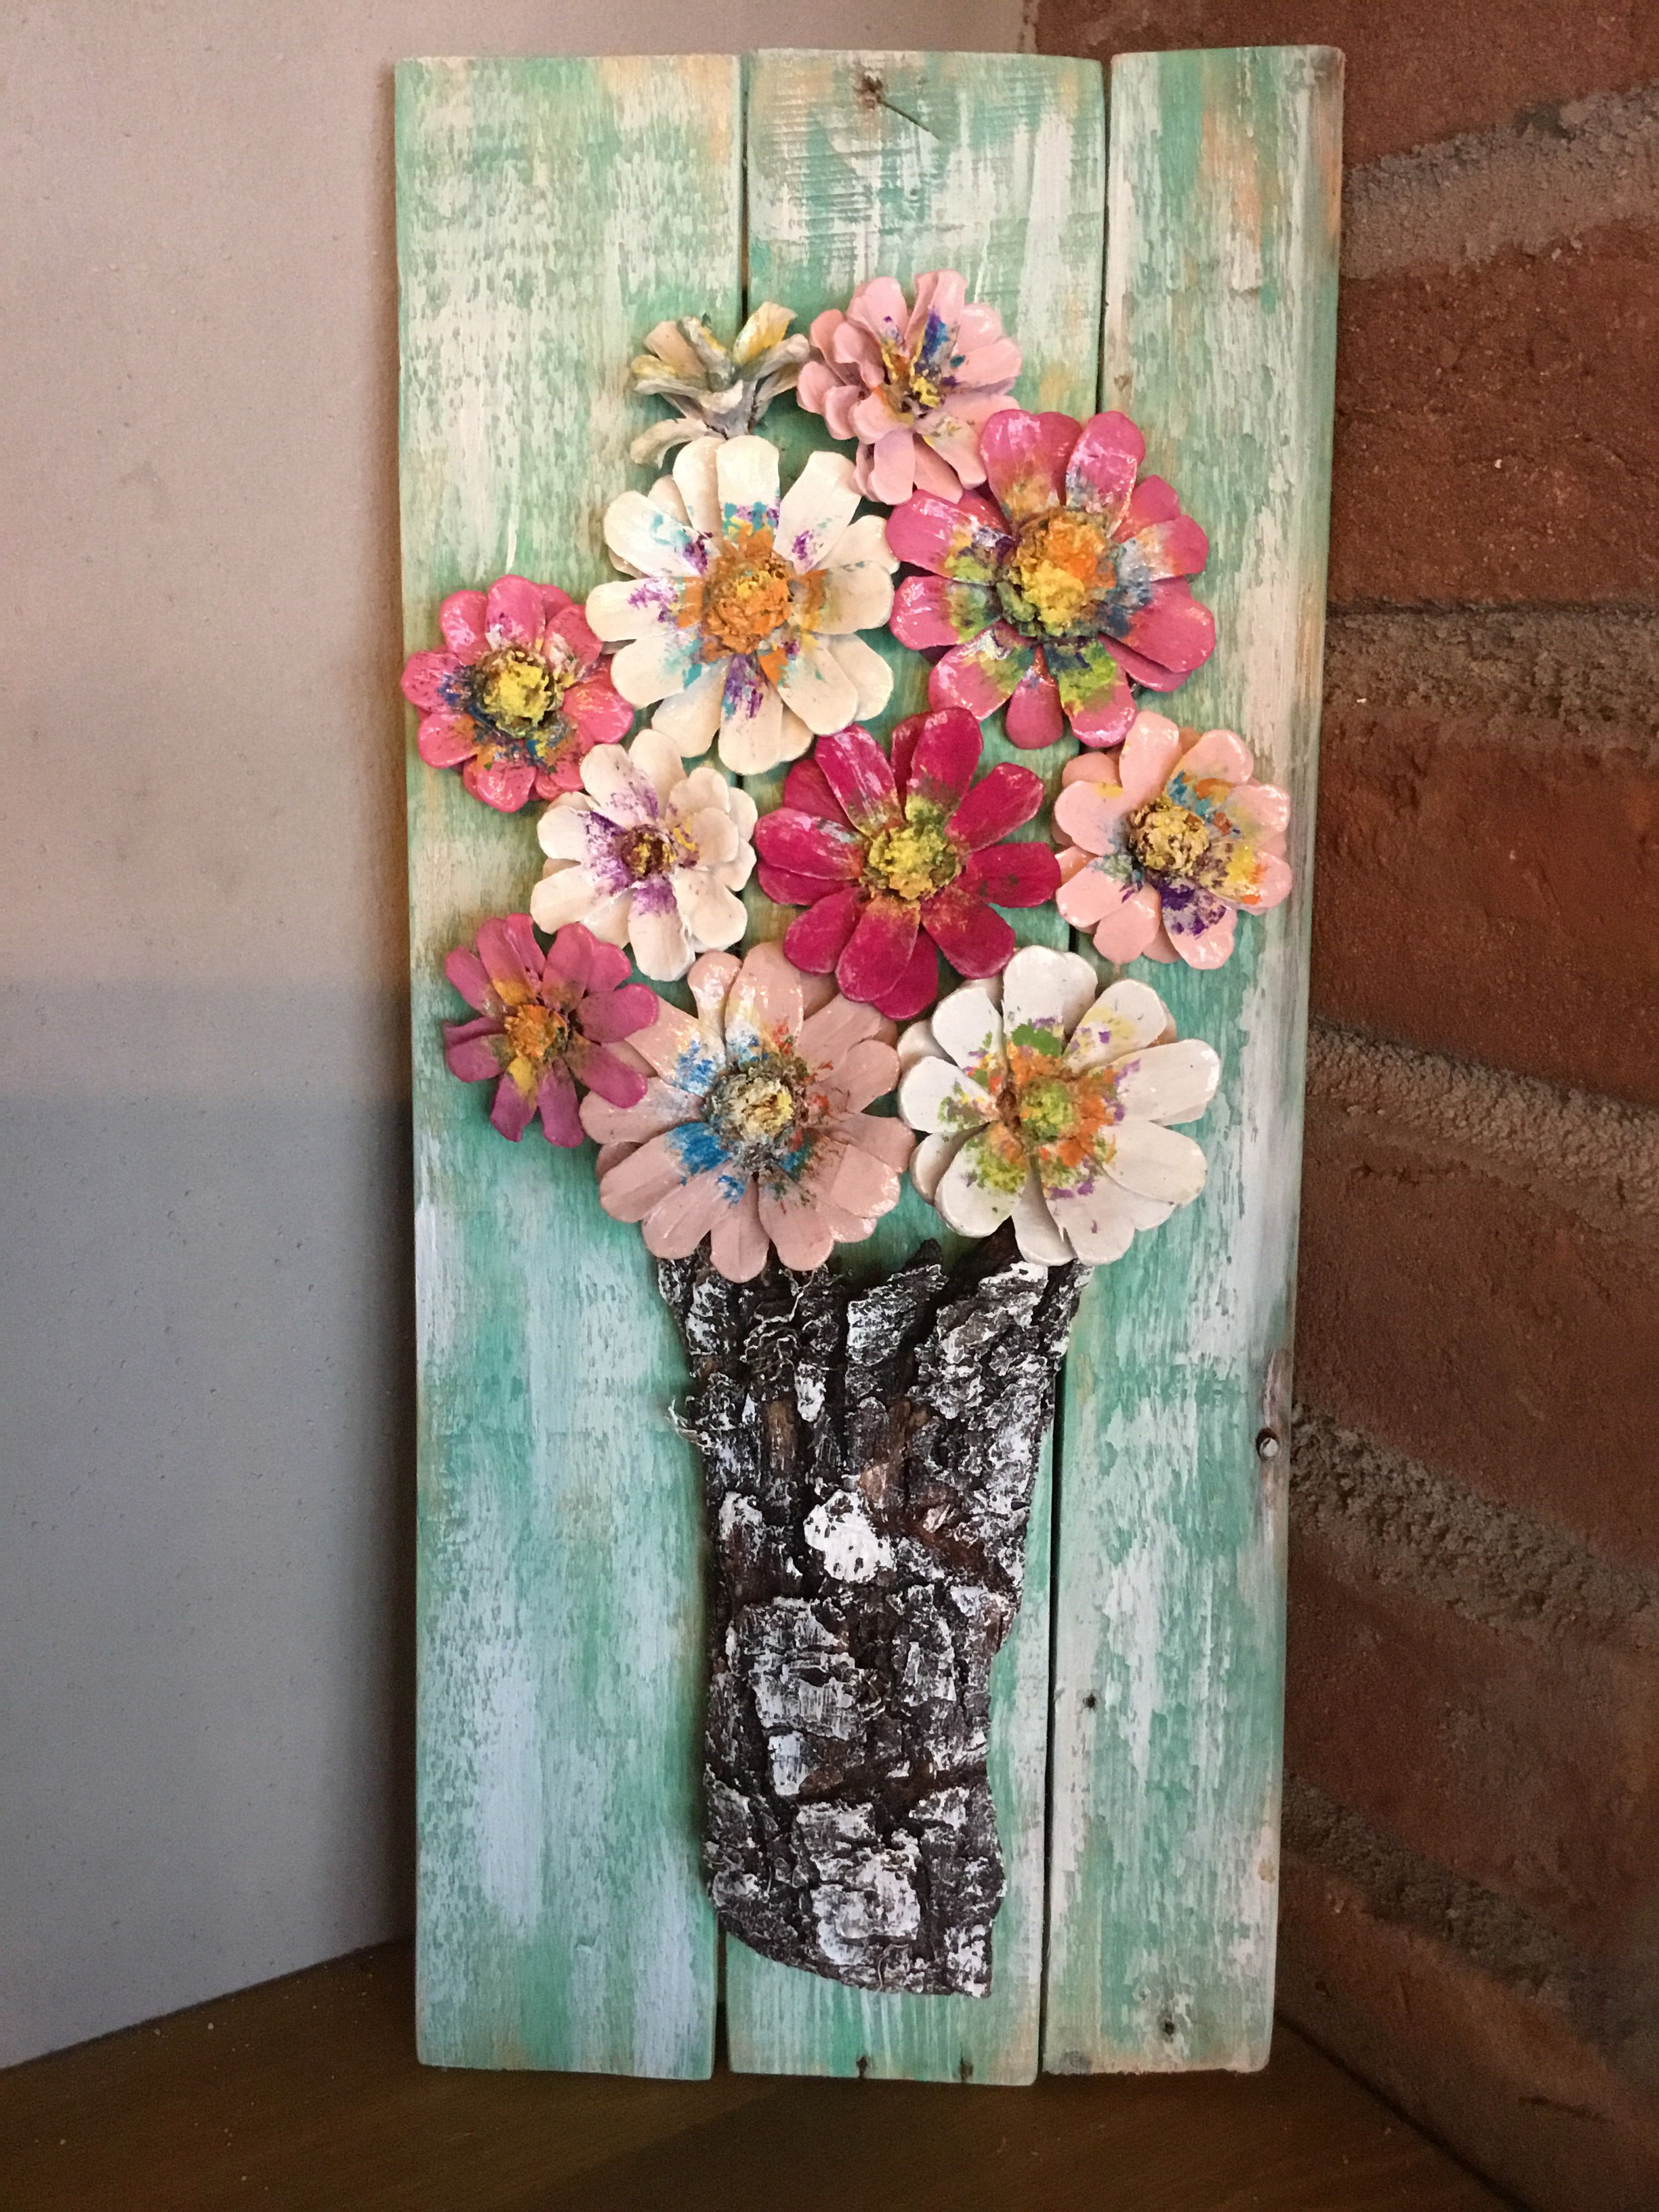 Pinecone flowers-hand painted wood framed pinecone flowers